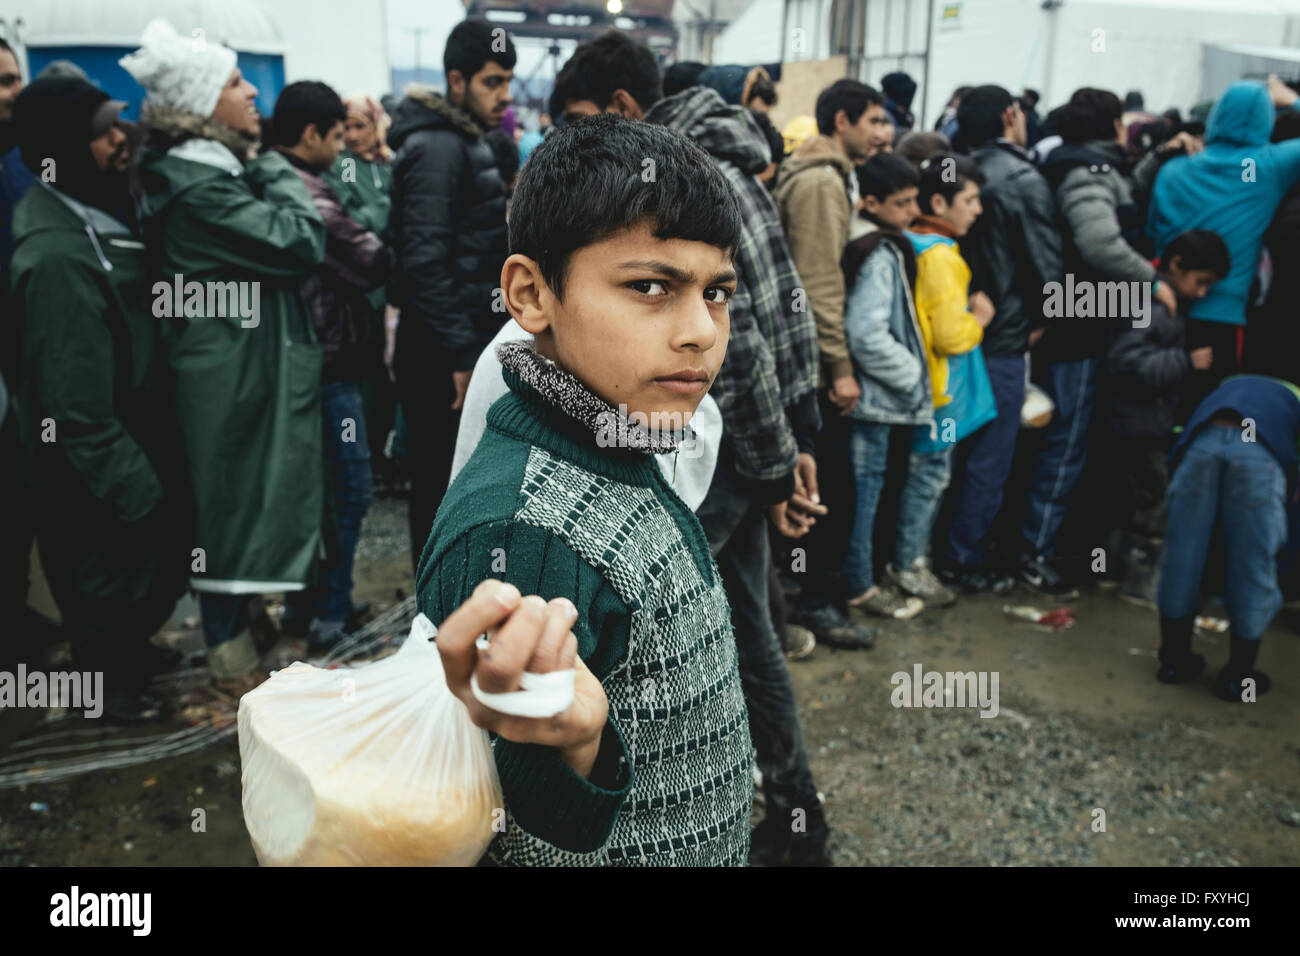 Food distribution, refugee camp in Idomeni, border with Macedonia, Greece - Stock Image